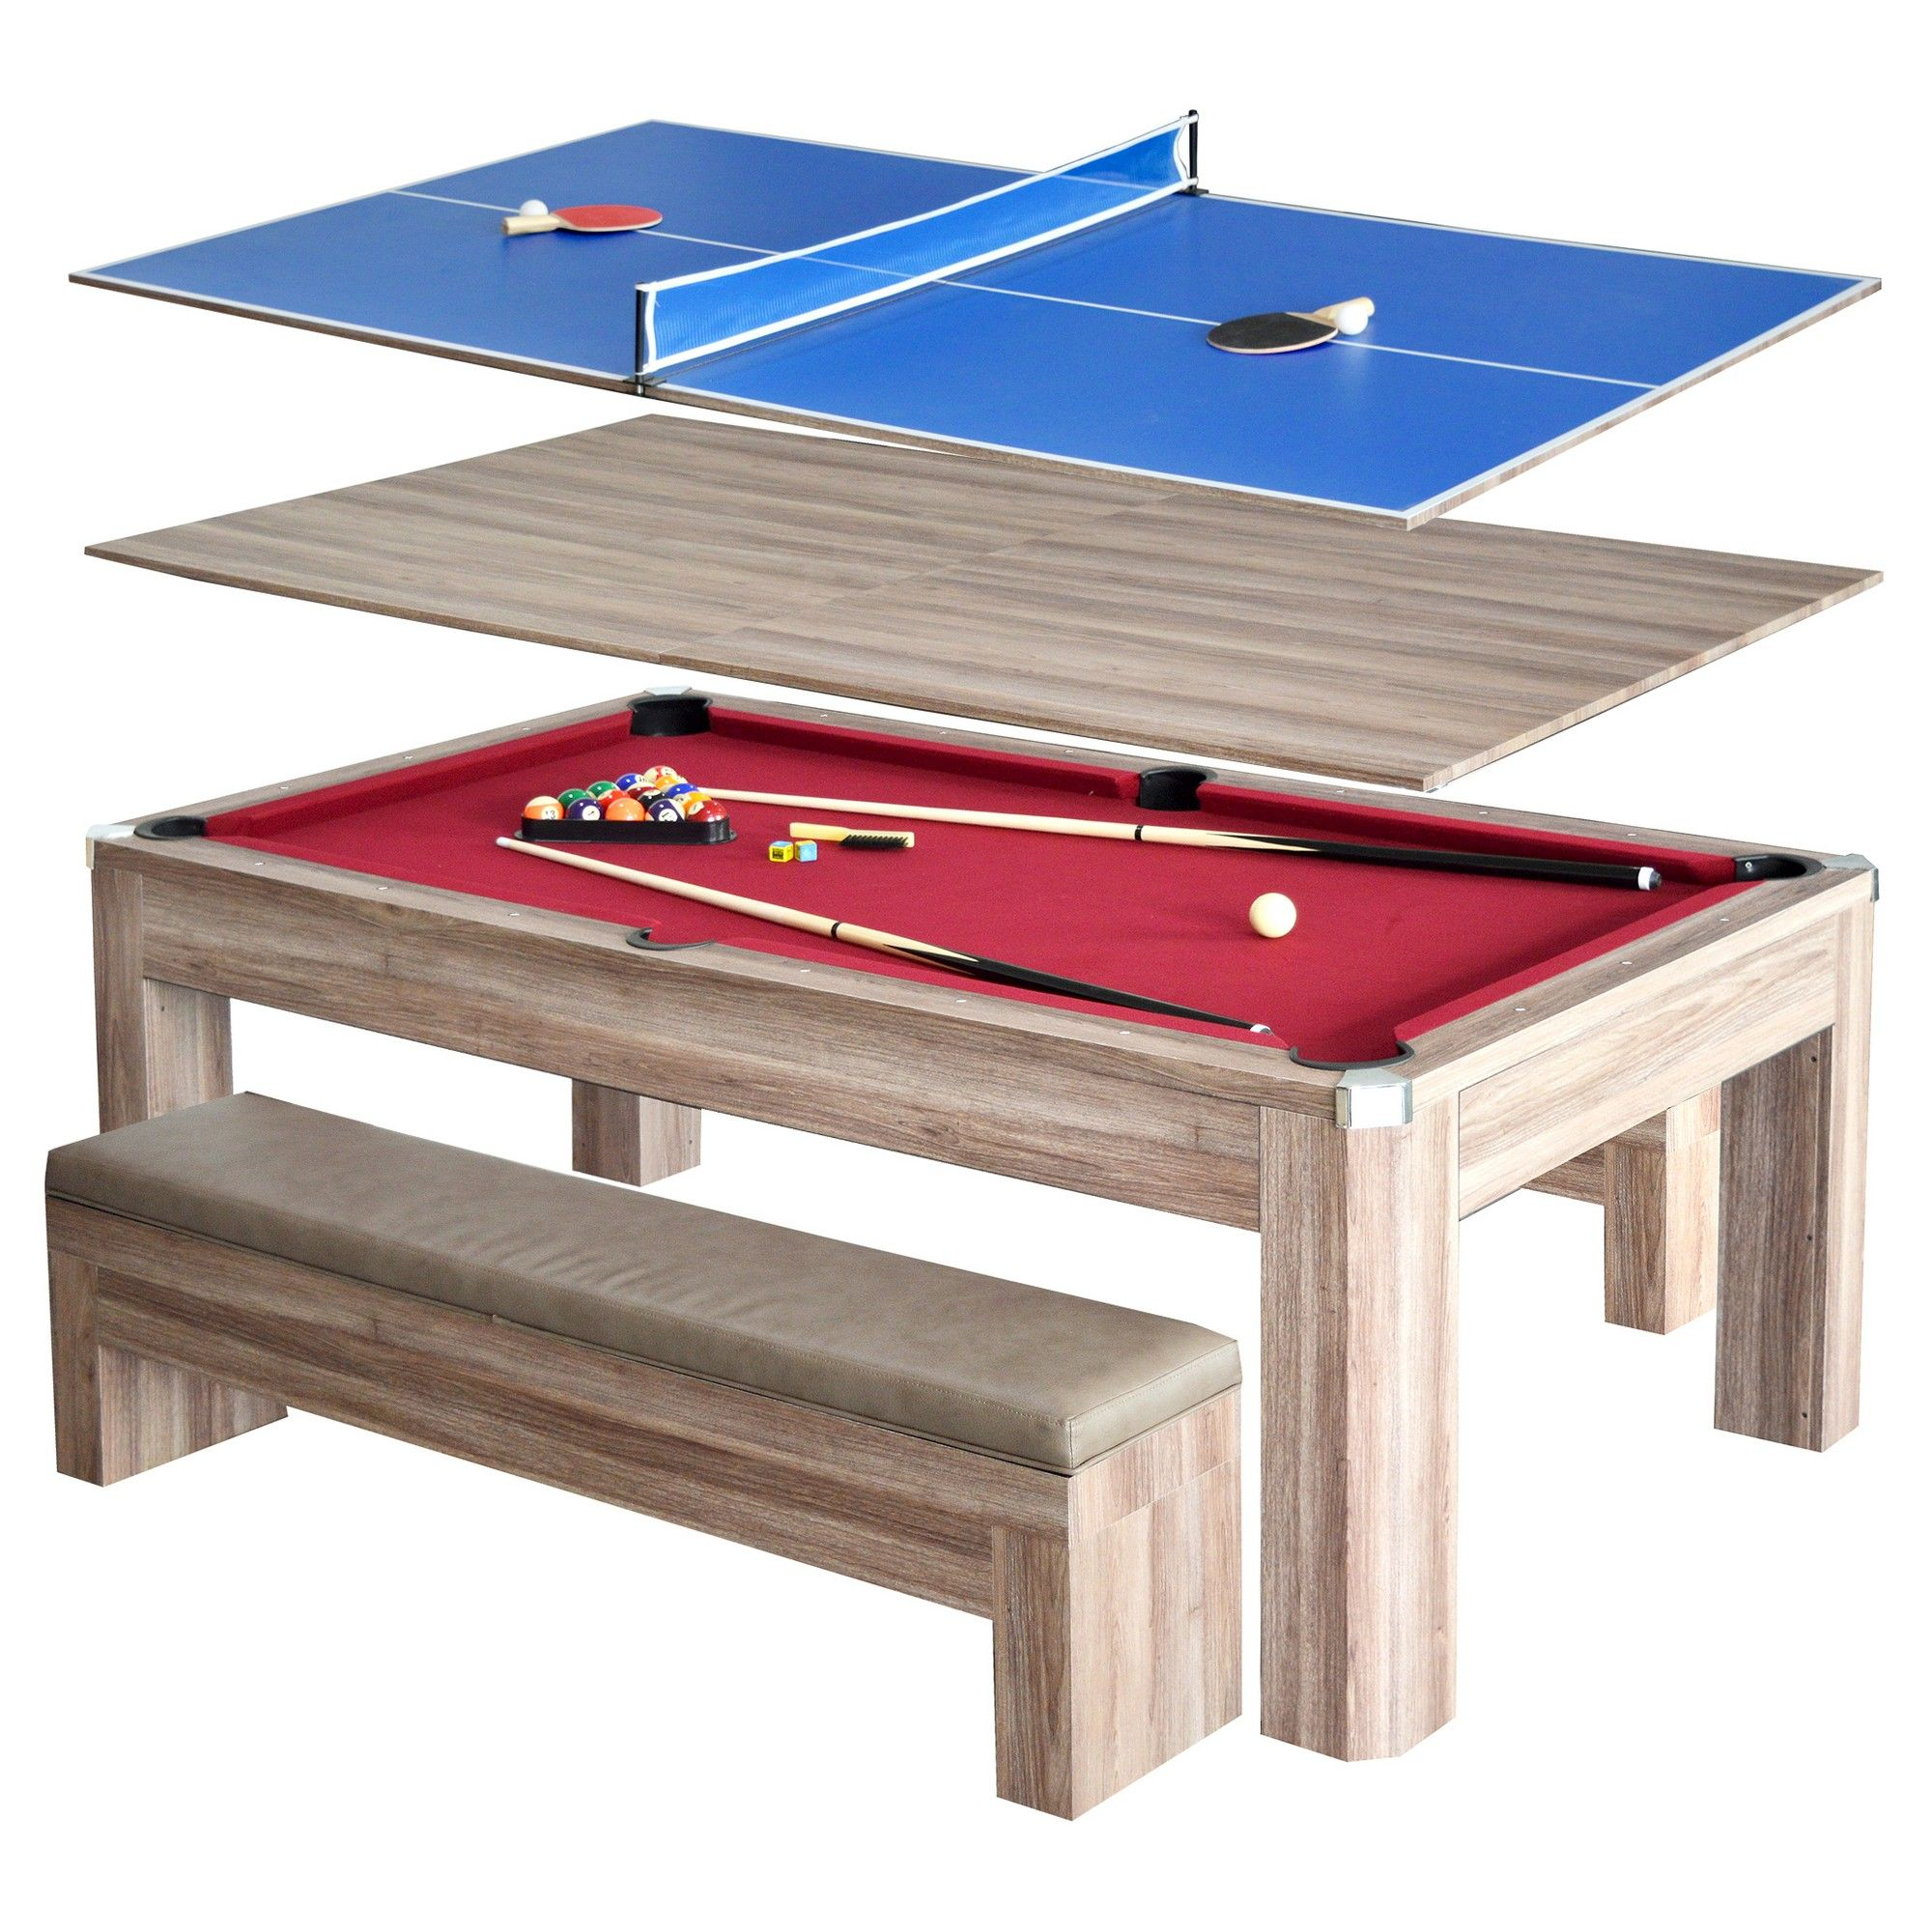 Pool Table Dining Room Table: Newport 7-ft Pool Table Combo Set W/ Benches